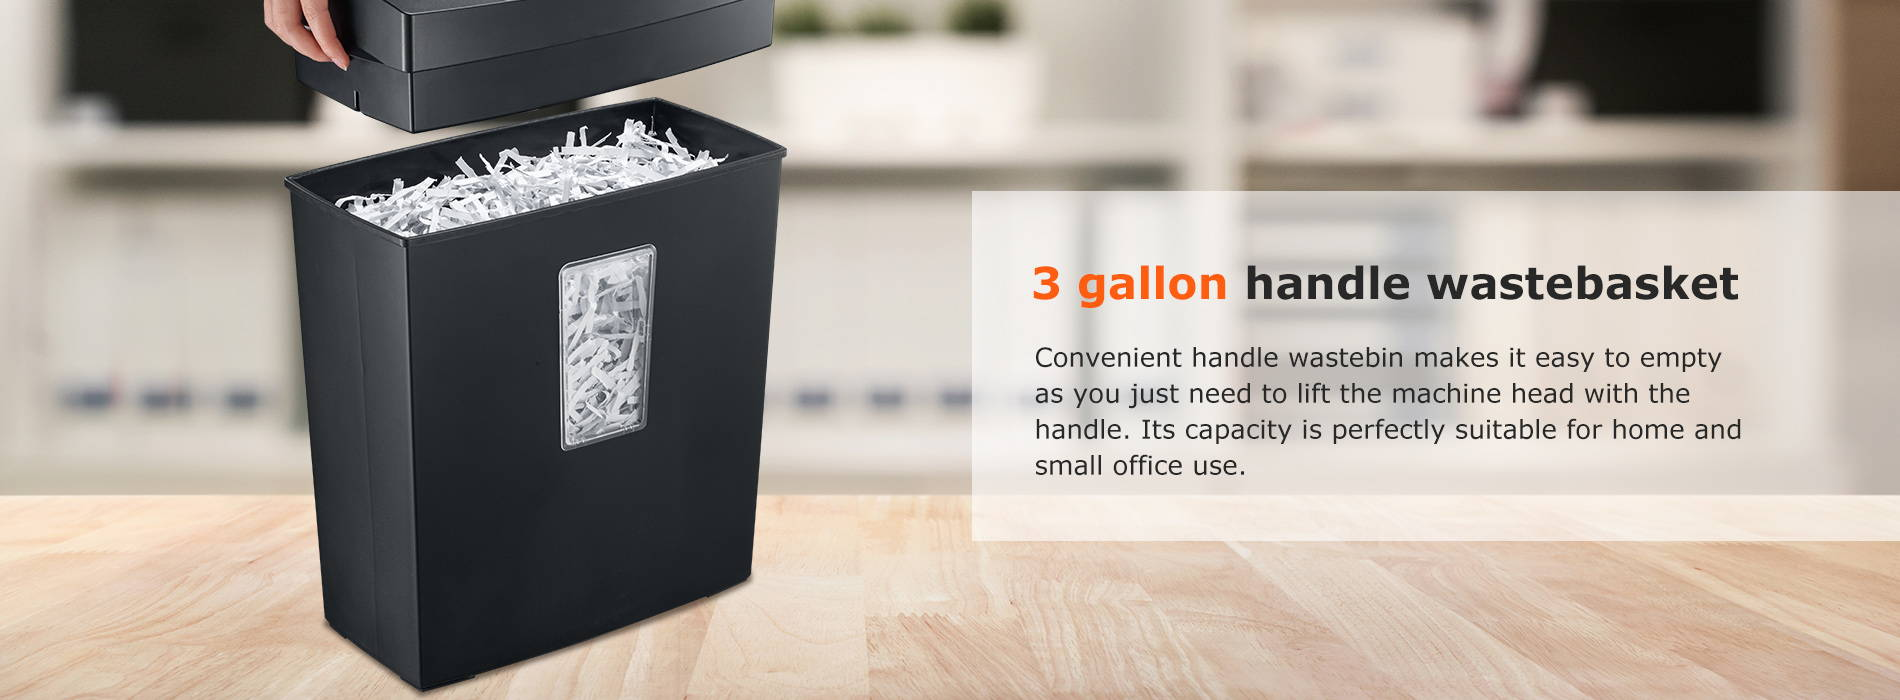 3 gallon handle wastebasket Convenient handle wastebin makes it easy to empty as you just need to lift the machine head with the handle. Its capacity is perfectly suitable for home and small office use.